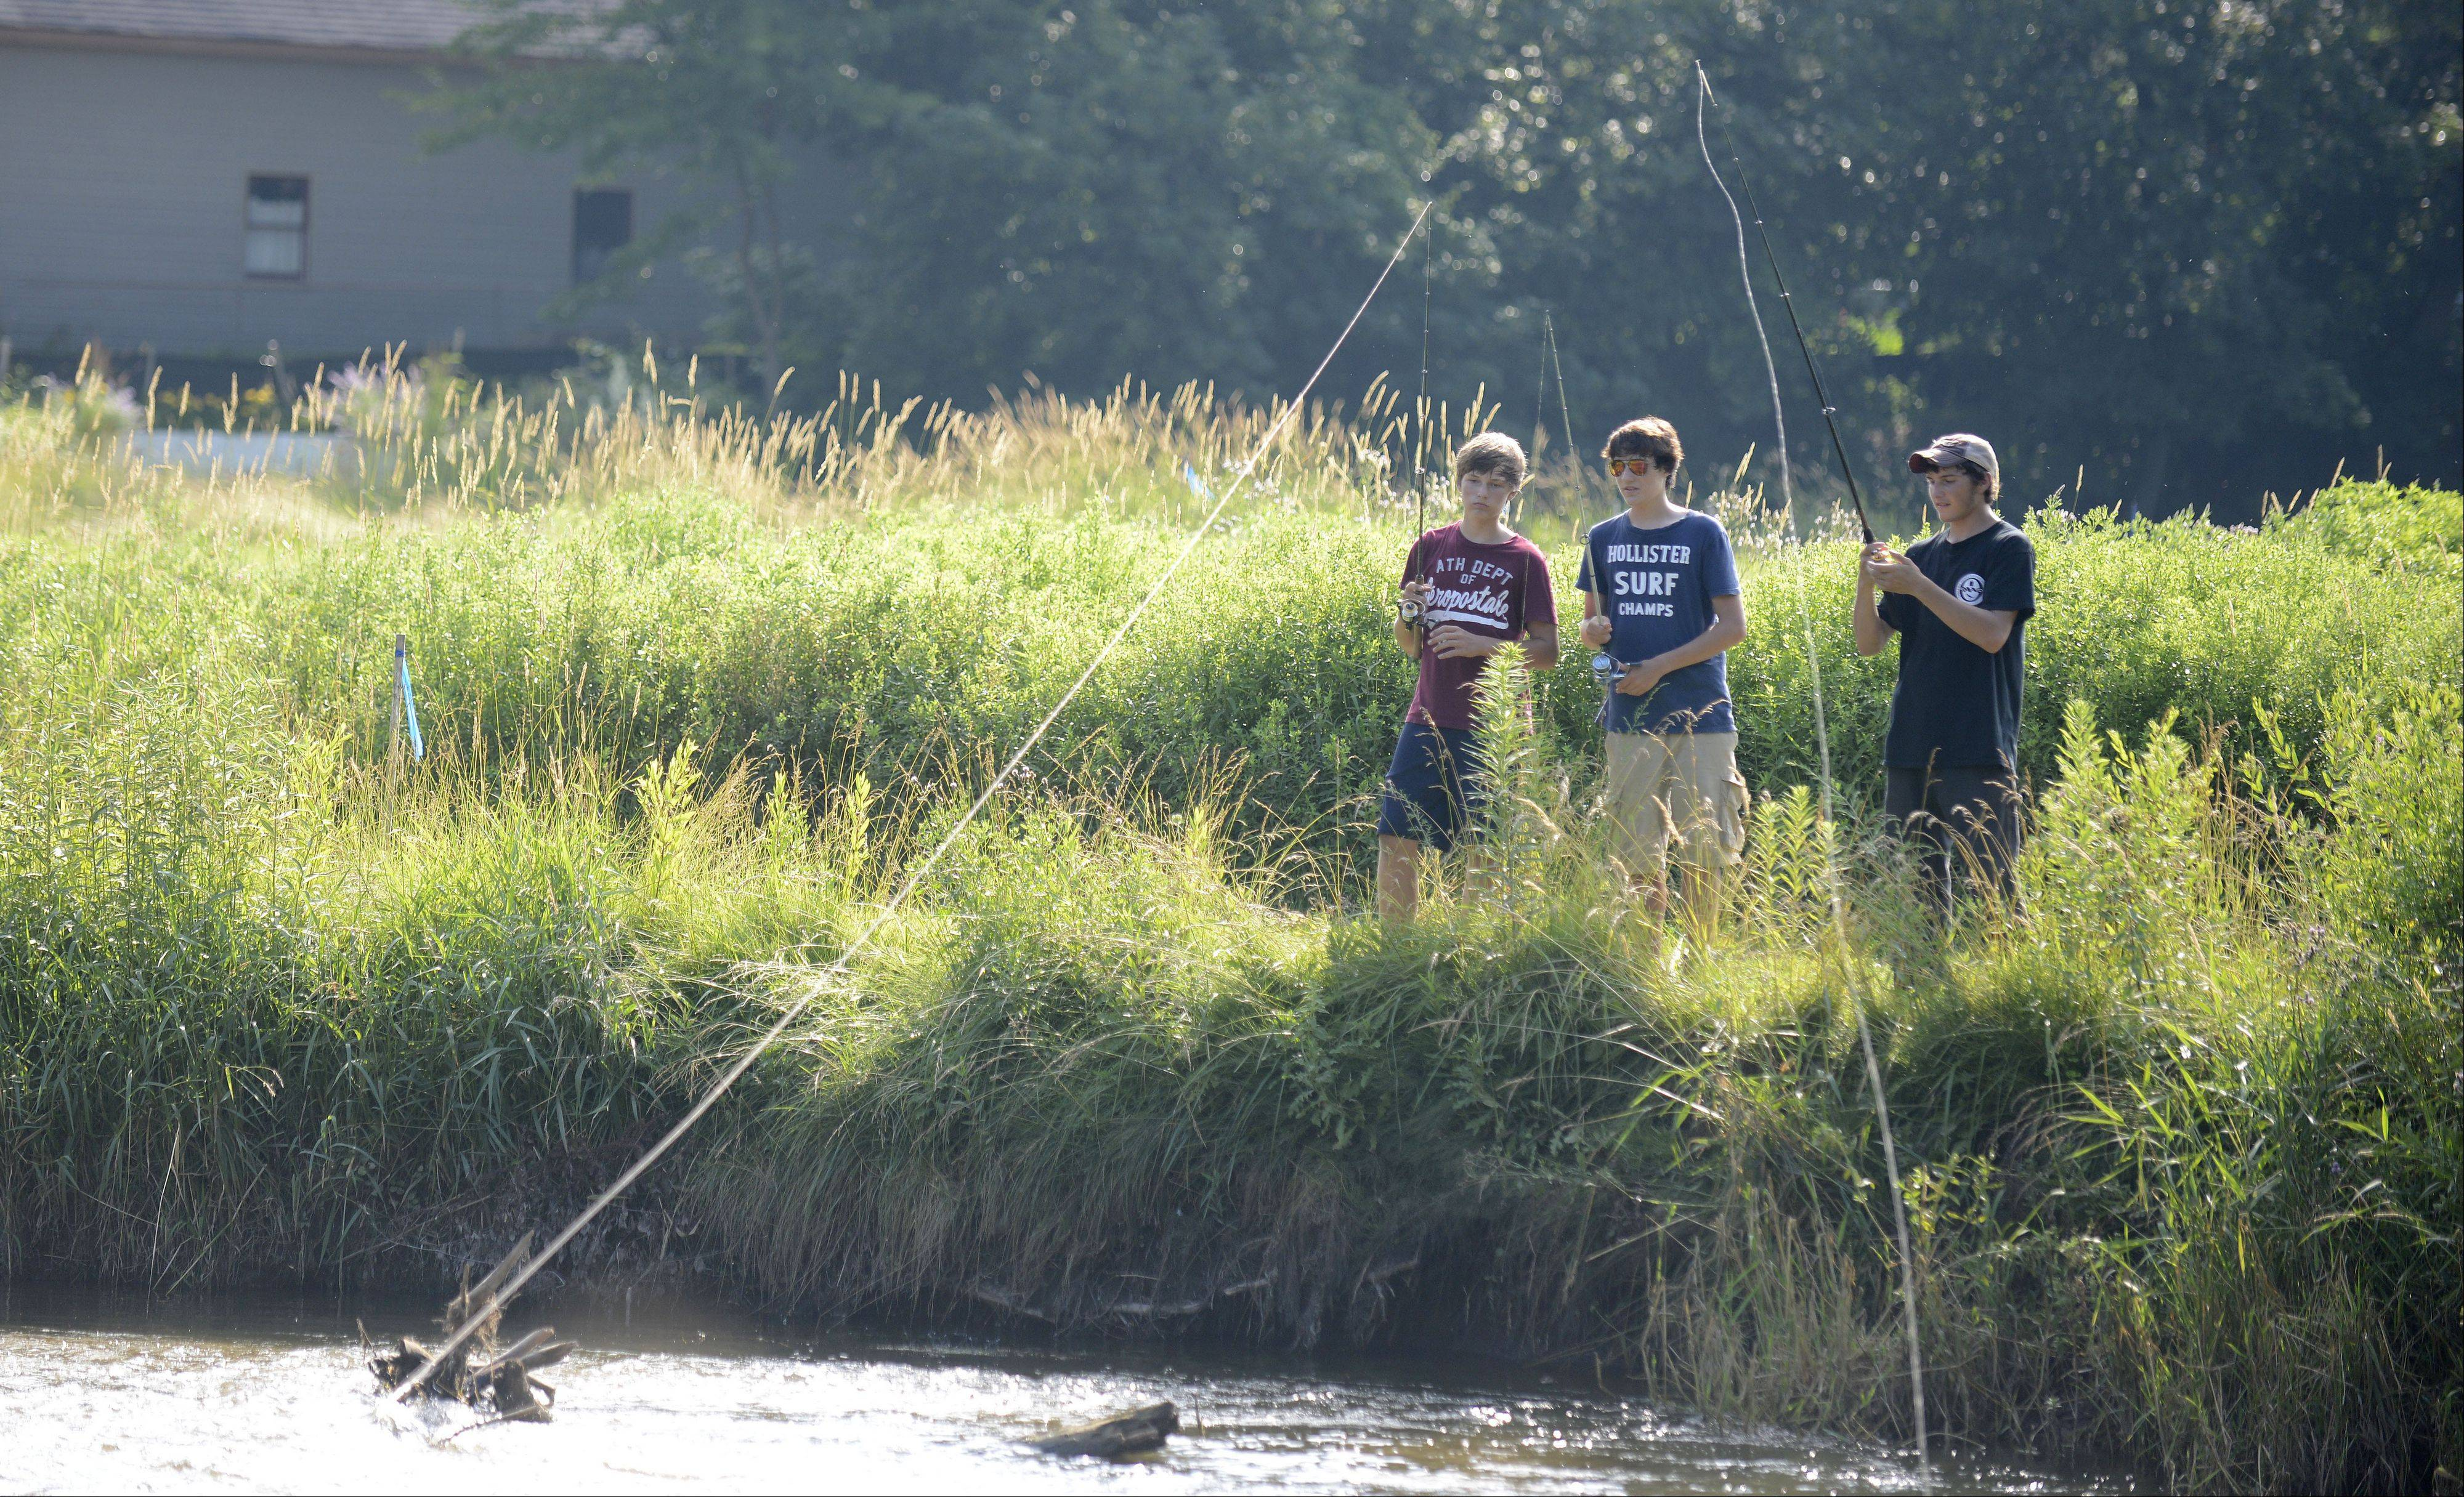 Algonquin residents give the village high marks for being a good place to live and raise a family. Scott Nory, Jacob Halper and Eric Longo spend a warm July day last year fishing in a creek near Towne Park.